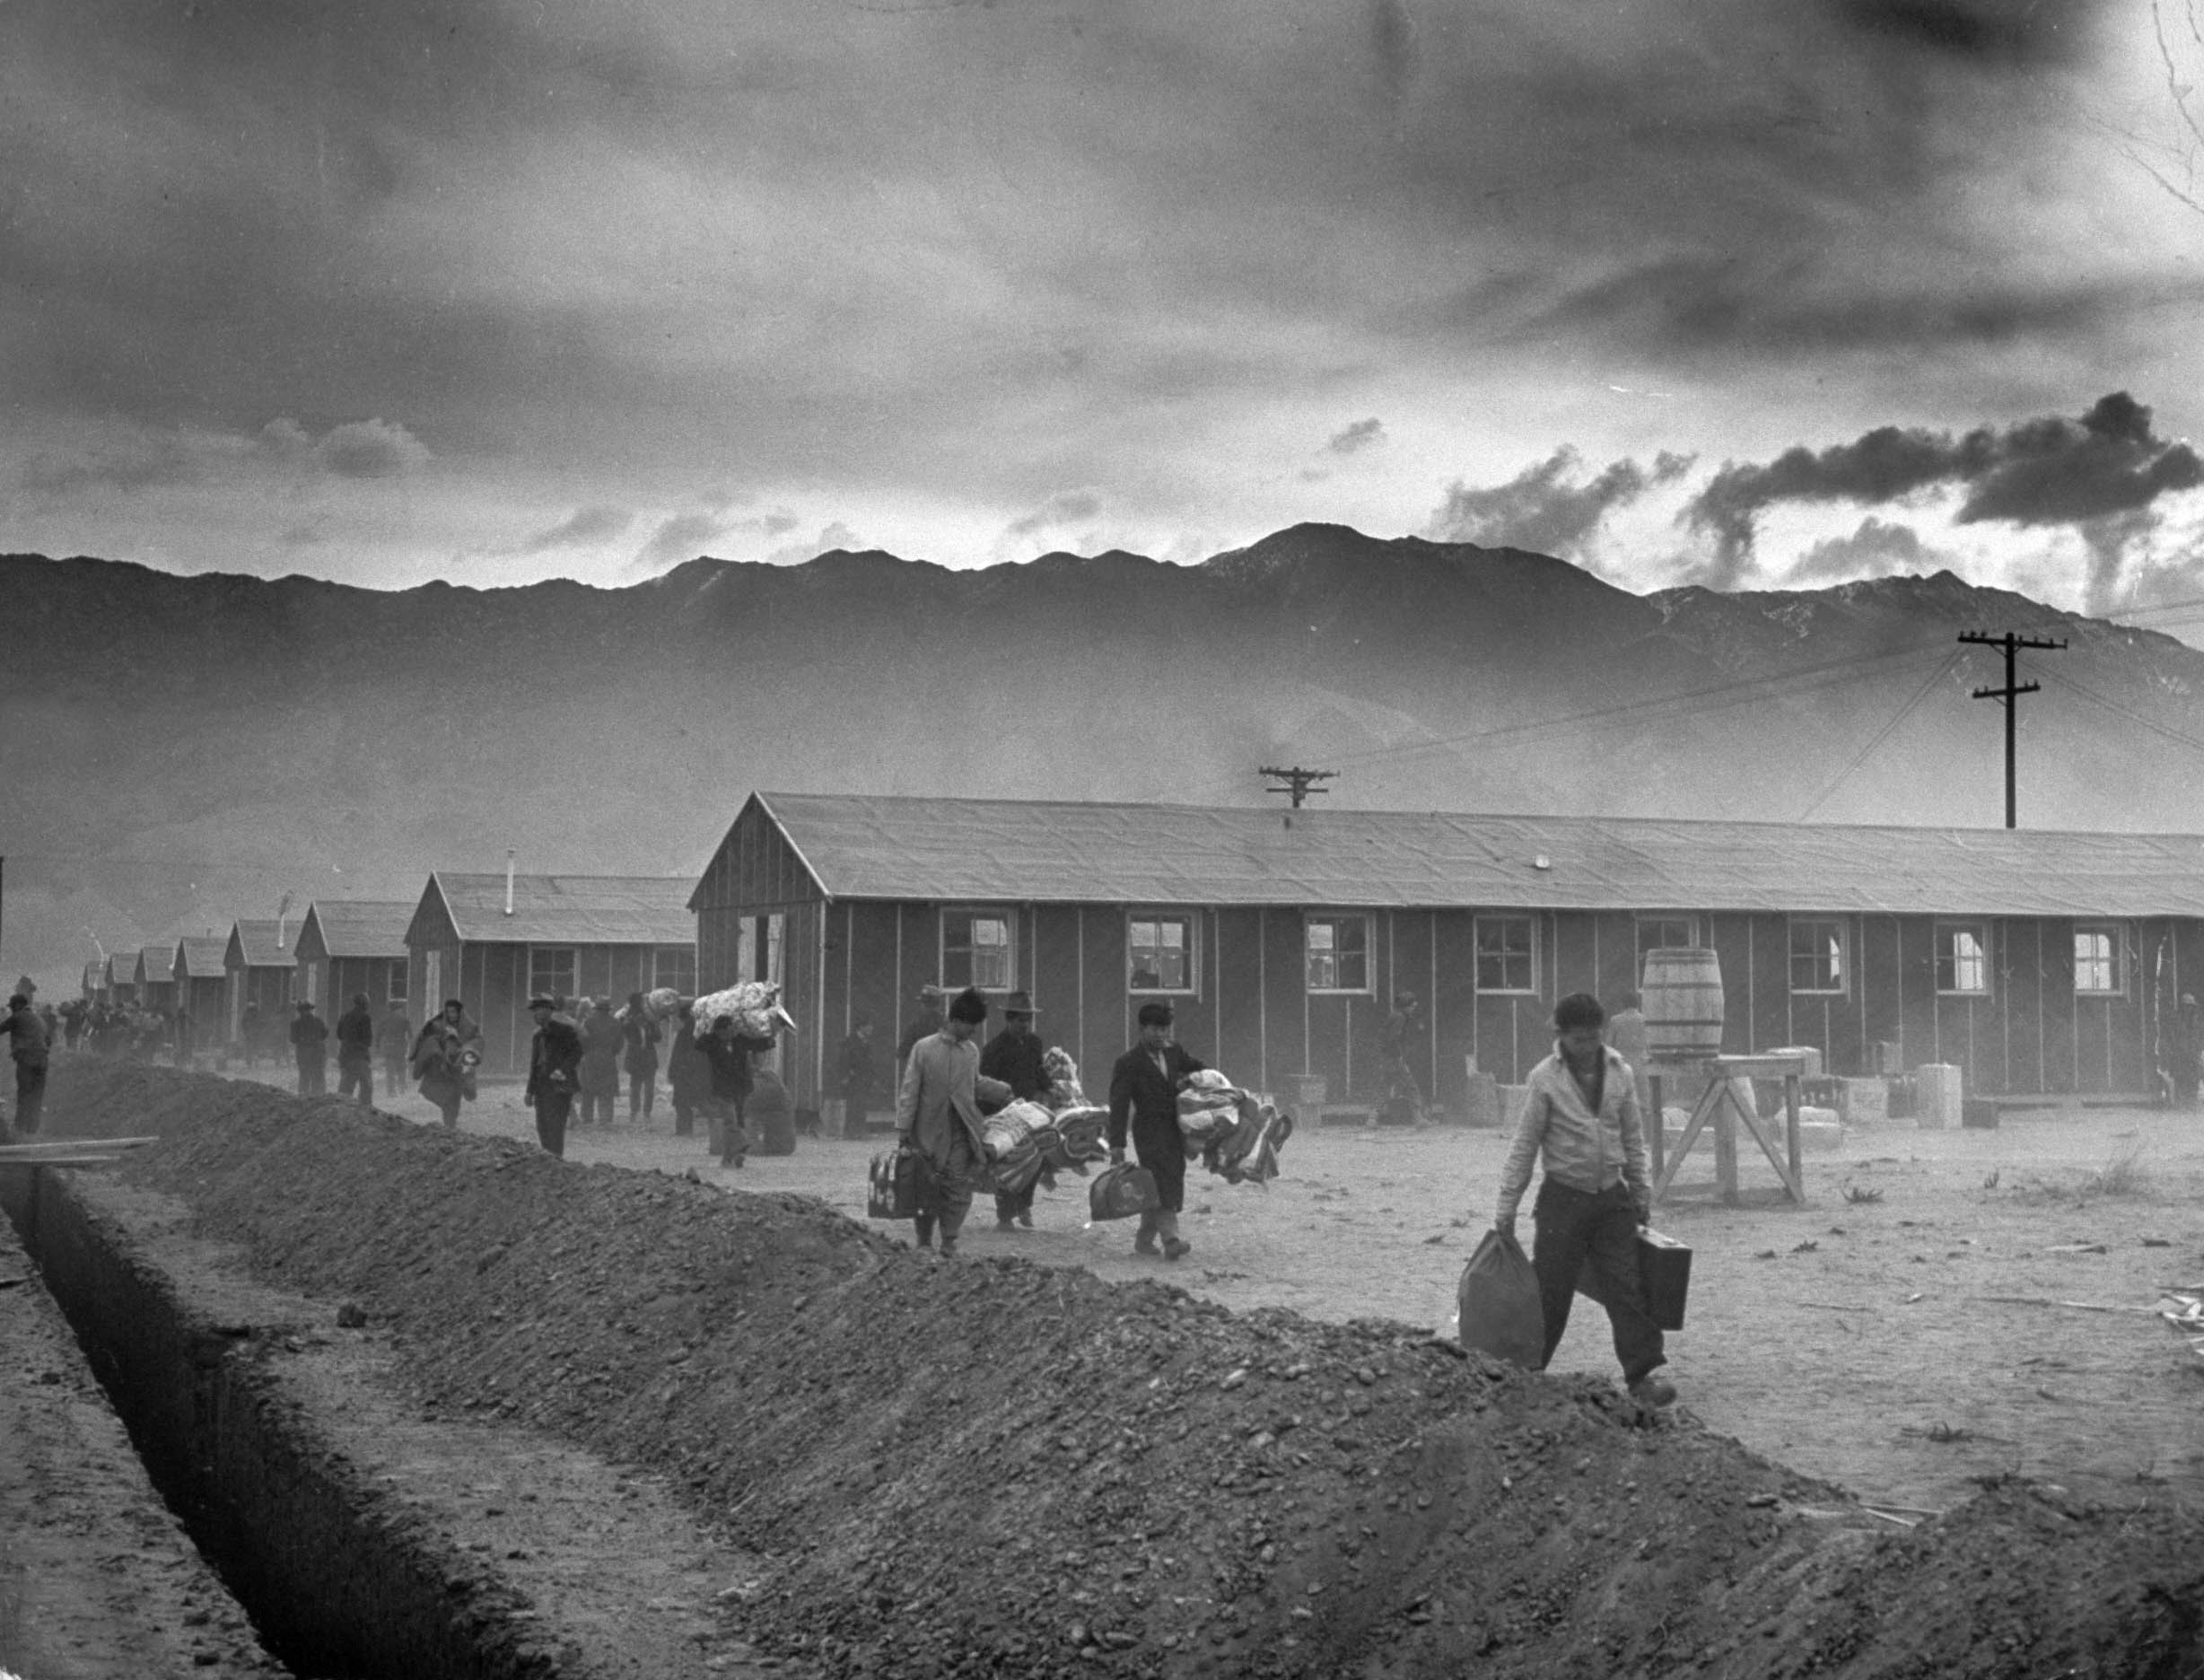 On March 21, 1942, the first 82 Japanese-American internees arrive at Manzanar, the first of the internment camps to open, in California's Owens Valley. It will ultimately hold more than 10,000.